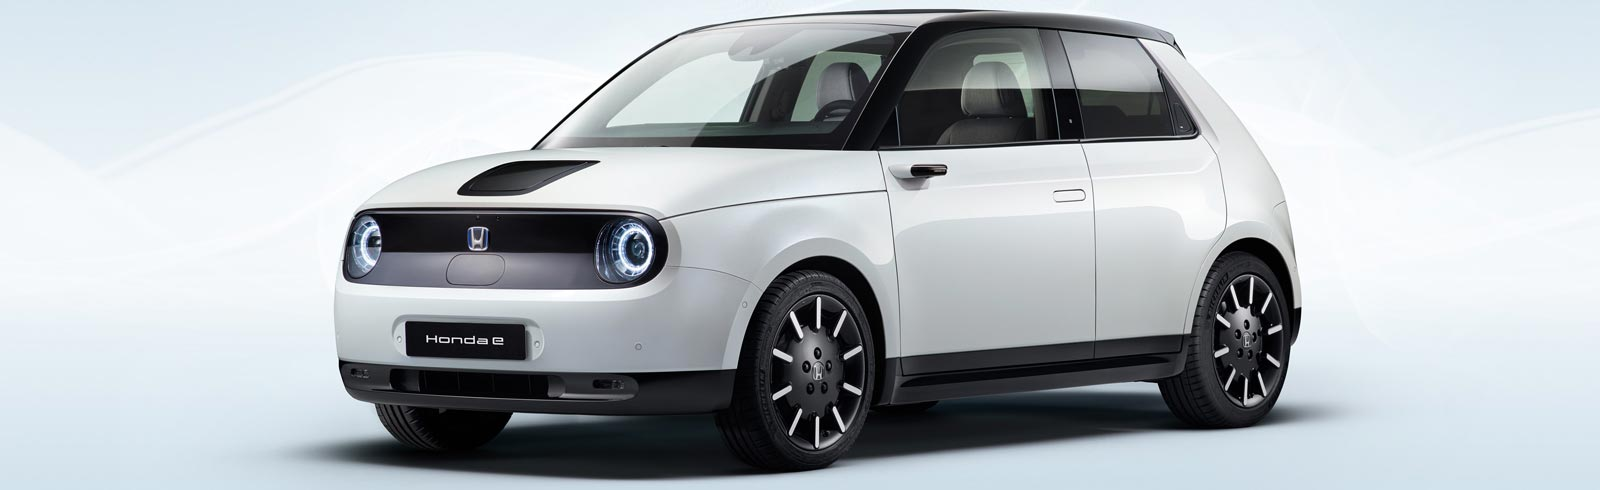 Mass production Honda e is official, will debut at the IAA 2019 in Frankfurt